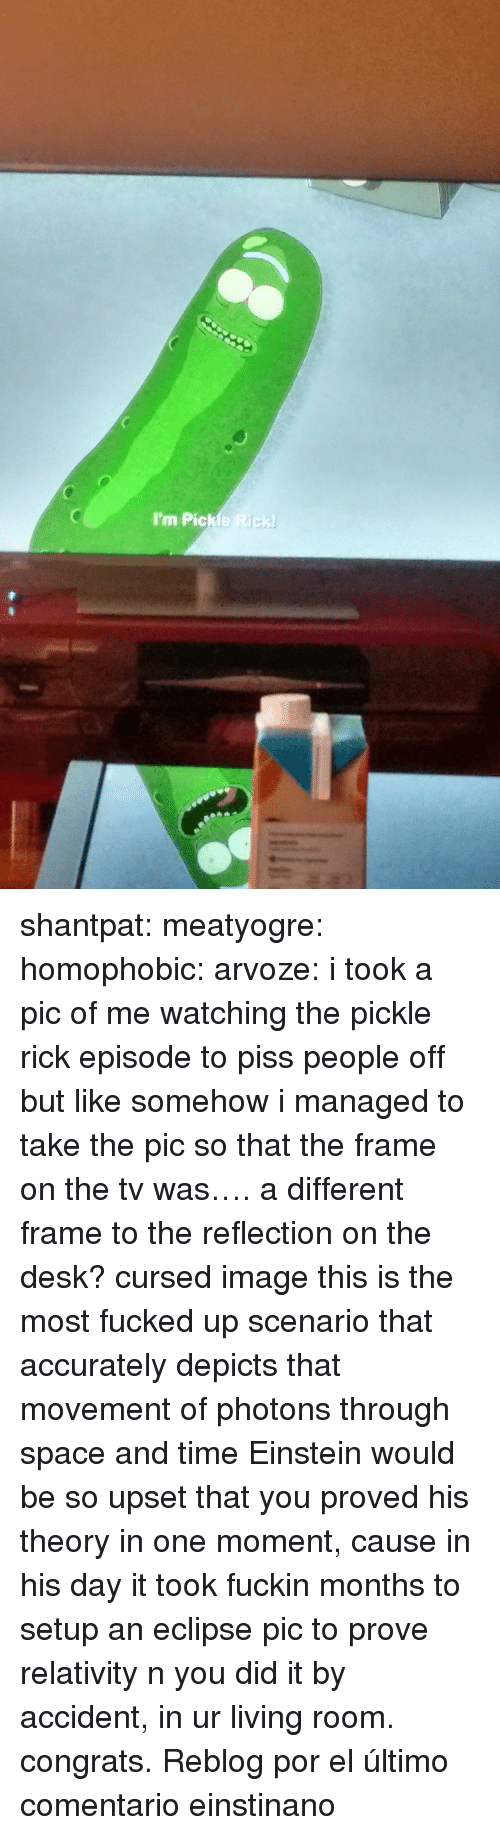 Pic Of Me: I'm Pickle Rick shantpat: meatyogre:  homophobic:  arvoze: i took a pic of me watching the pickle rick episode to piss people off but like somehow i managed to take the pic so that the frame on the tv was…. a different frame to the reflection on the desk?  cursed image  this is the most fucked up scenario that accurately depicts that movement of photons through space and time  Einstein would be so upset that you proved his theory in one moment, cause in his day it took fuckin months to setup an eclipse pic to prove relativity n you did it by accident, in ur living room. congrats.   Reblog por el último comentario einstinano